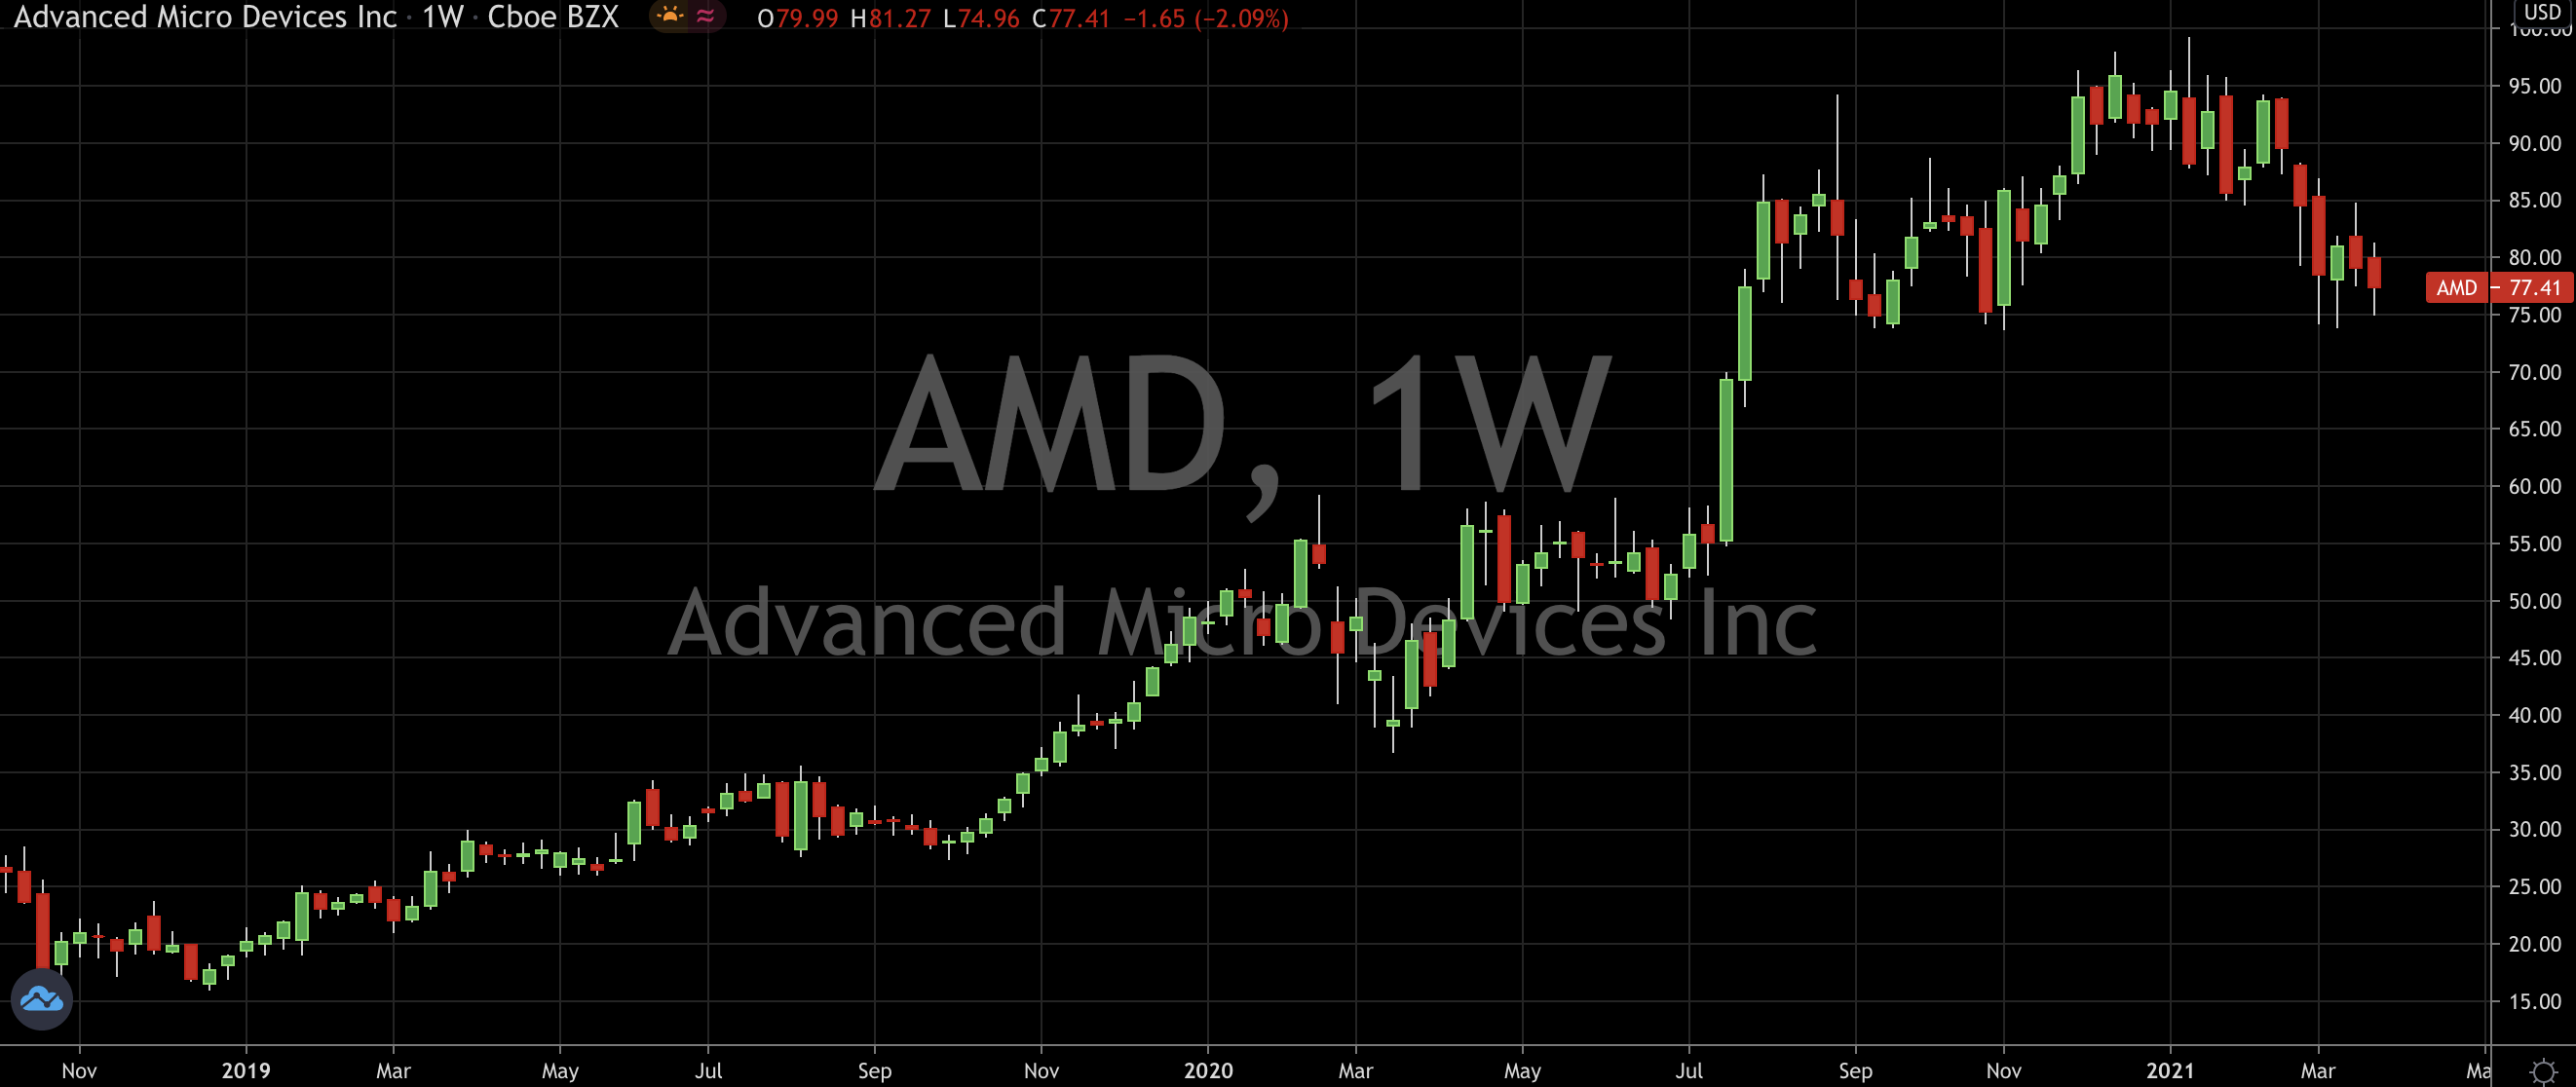 Advanced Micro Devices (NASDAQ: AMD) Gets A New Bull